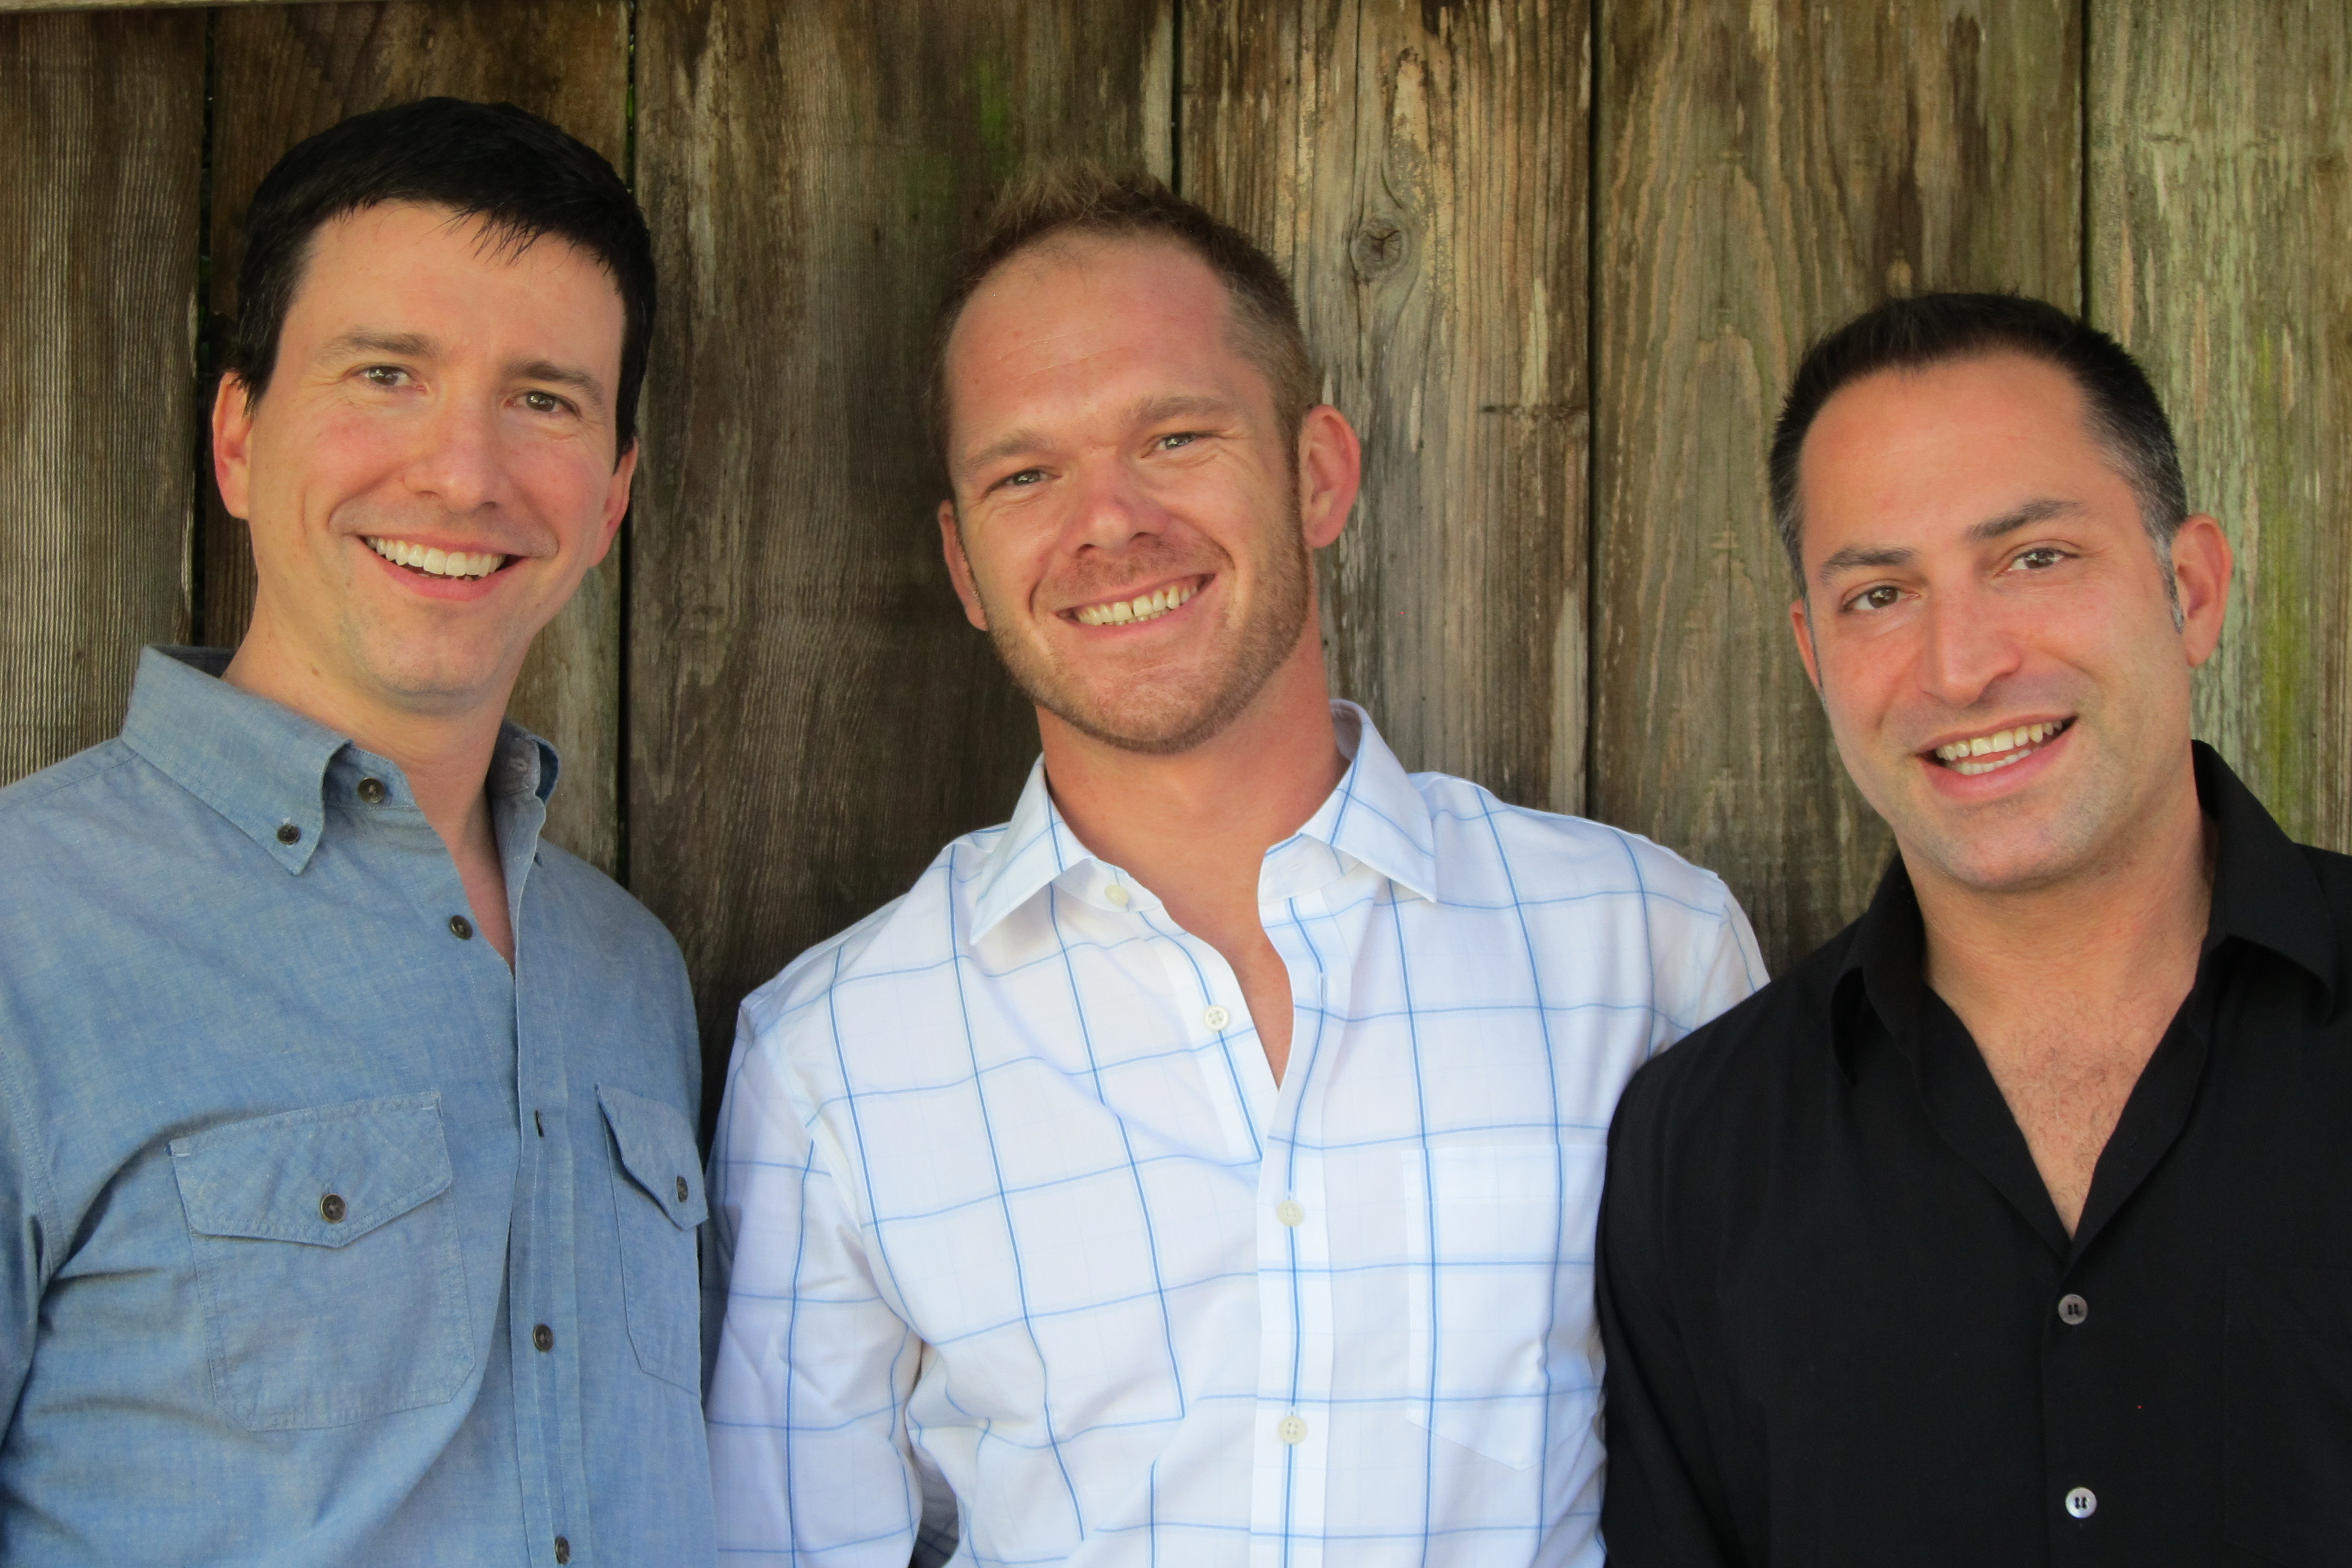 Jason, Zak & Woodie - The Startup Exemption Team